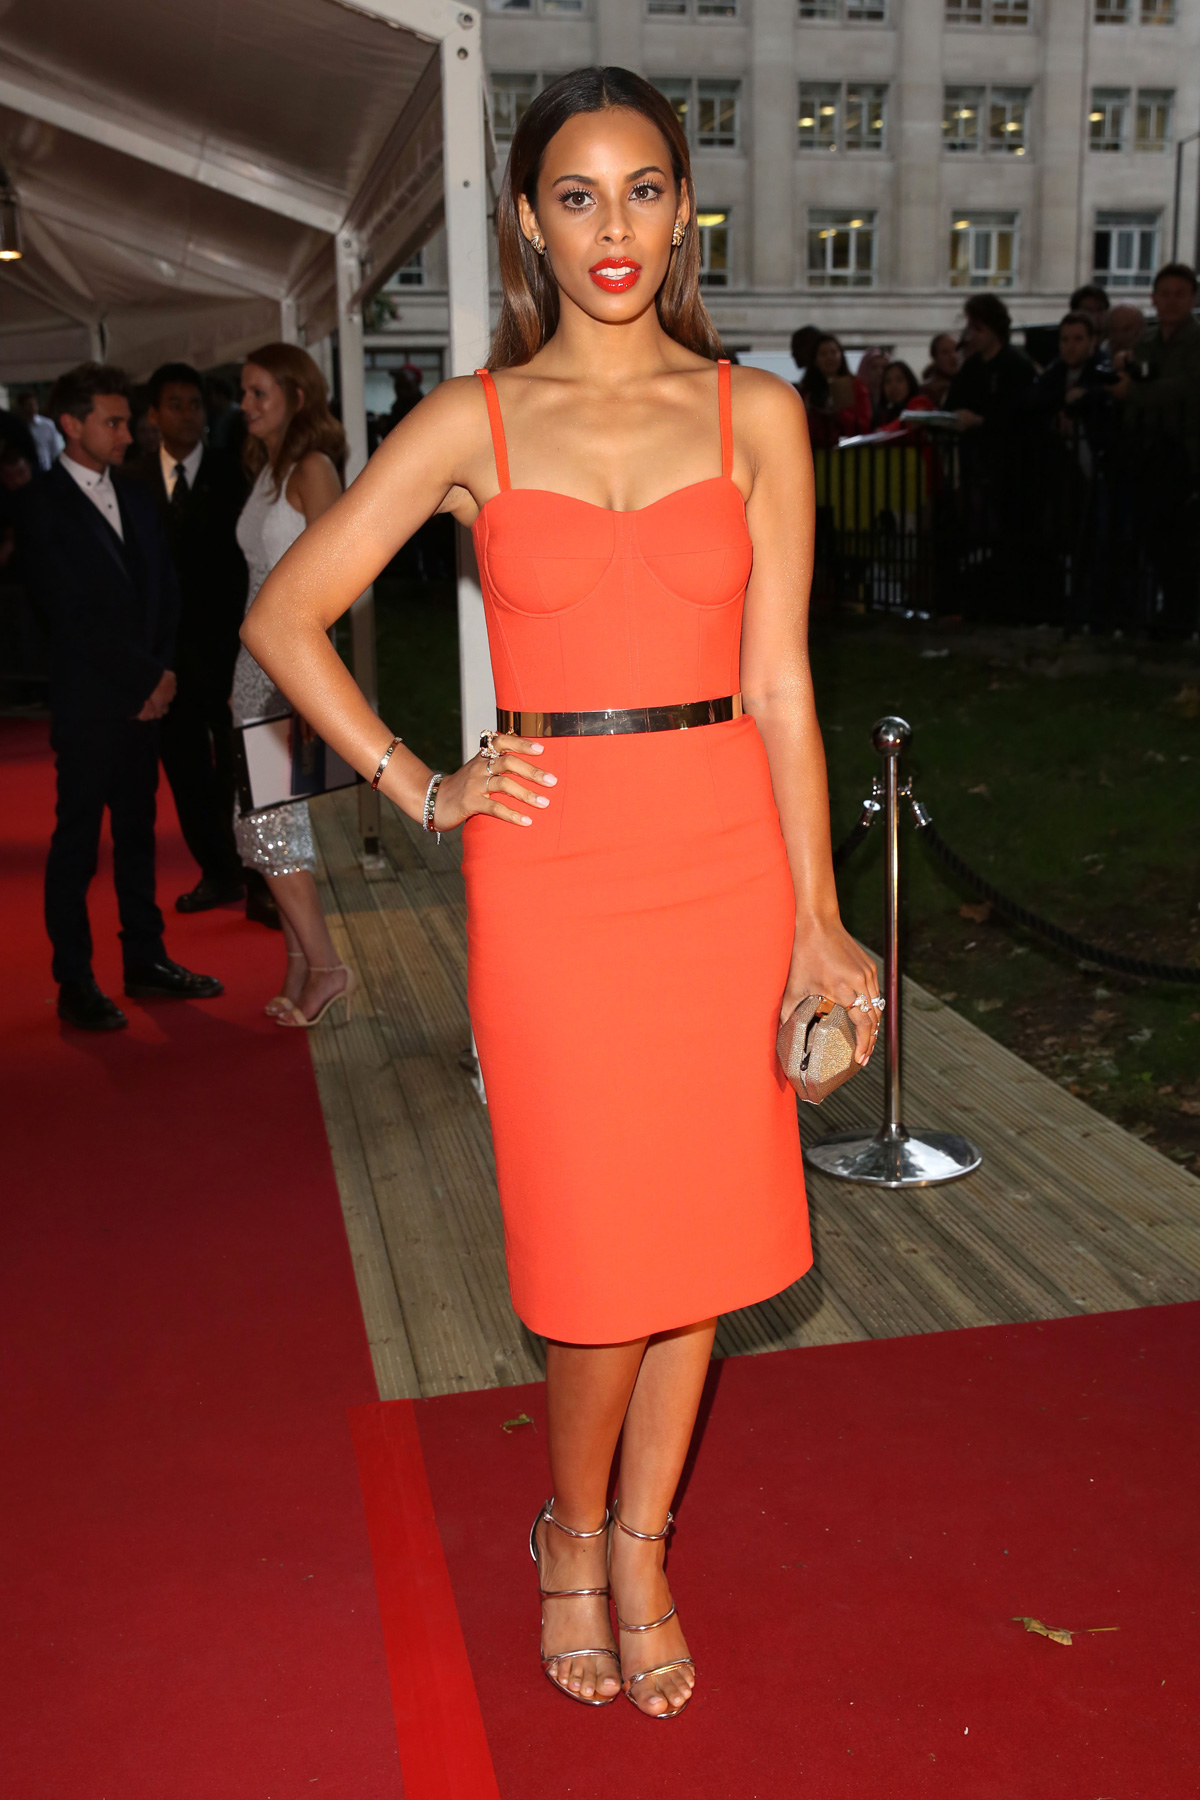 Rochelle Humes at the Glamour Women of the Year Awards